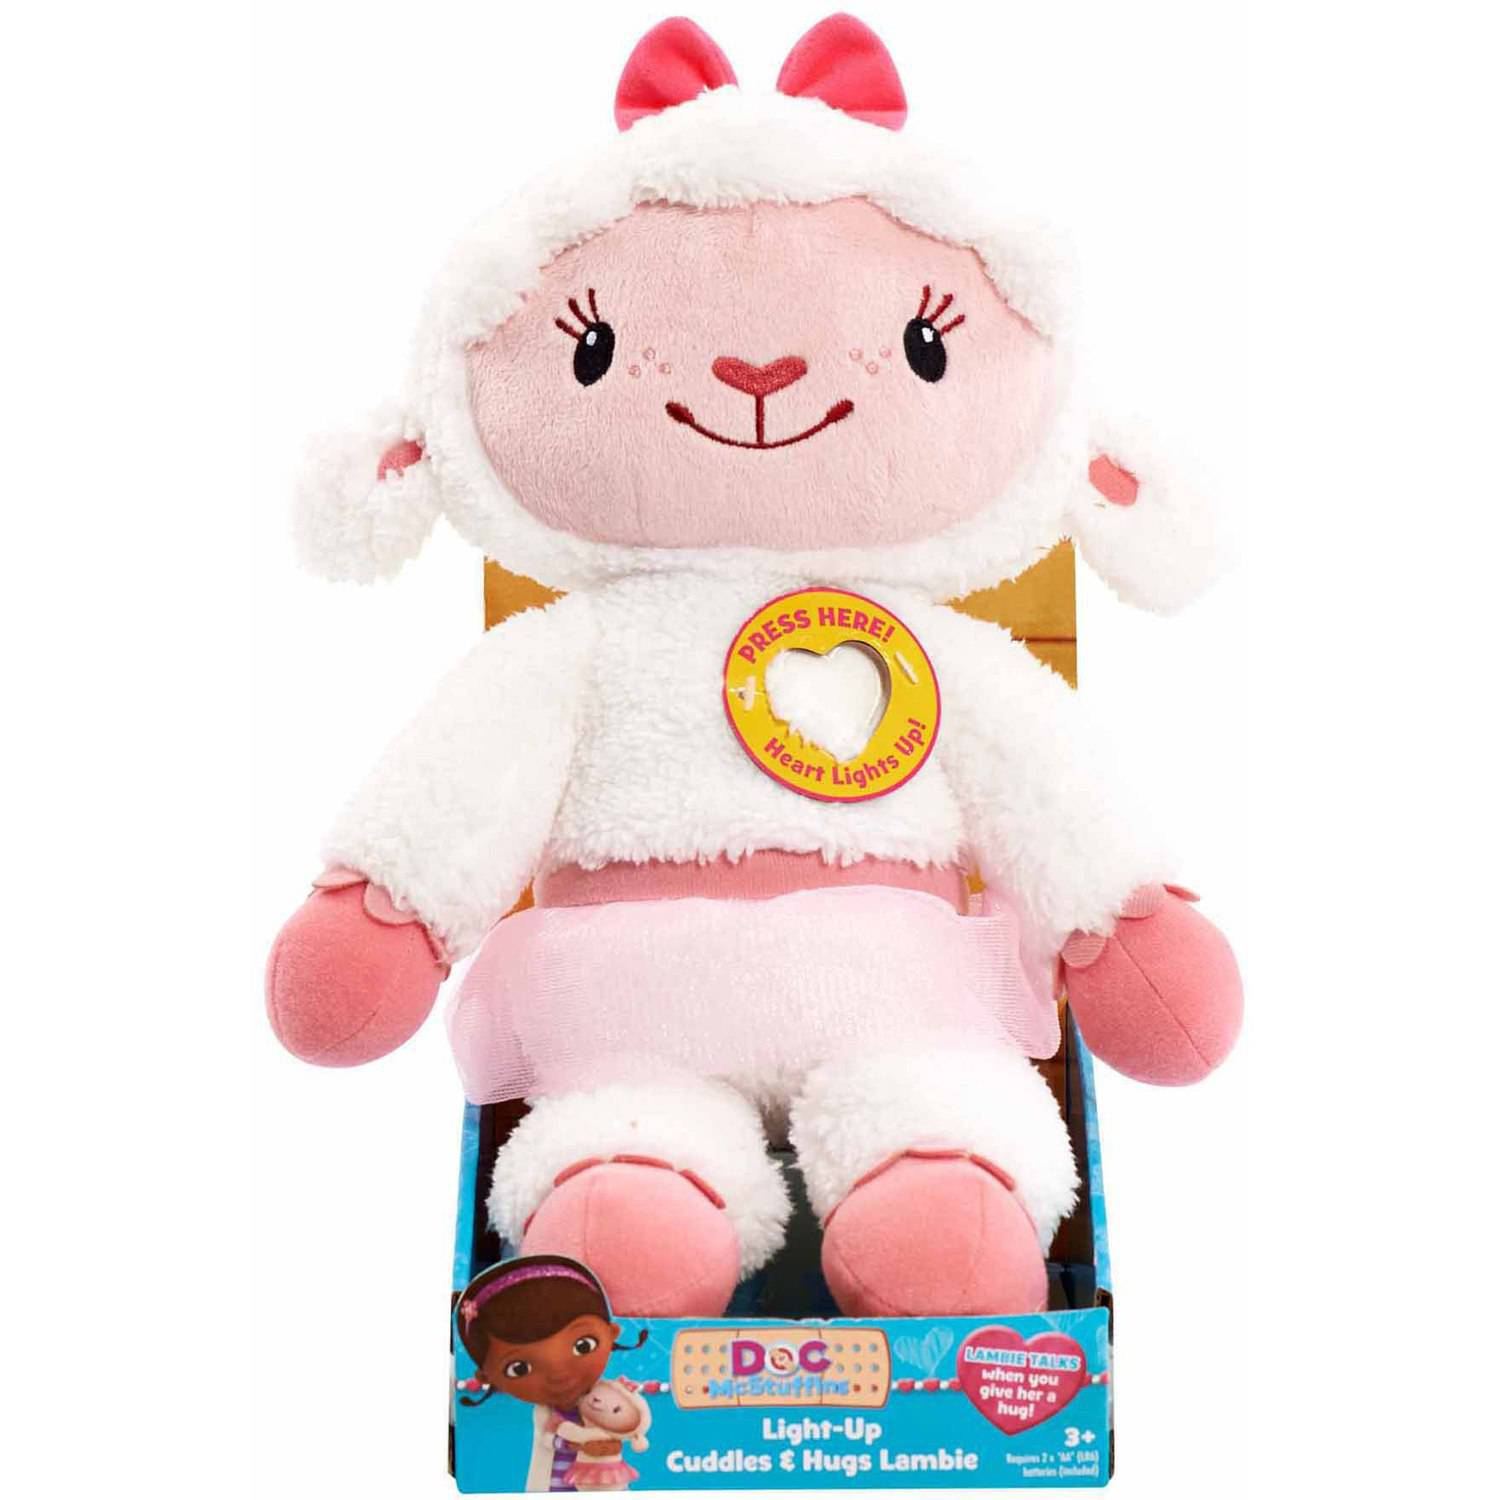 Doc Mcstuffins Cuddles and Hugs Light-Up Plush, Lambie